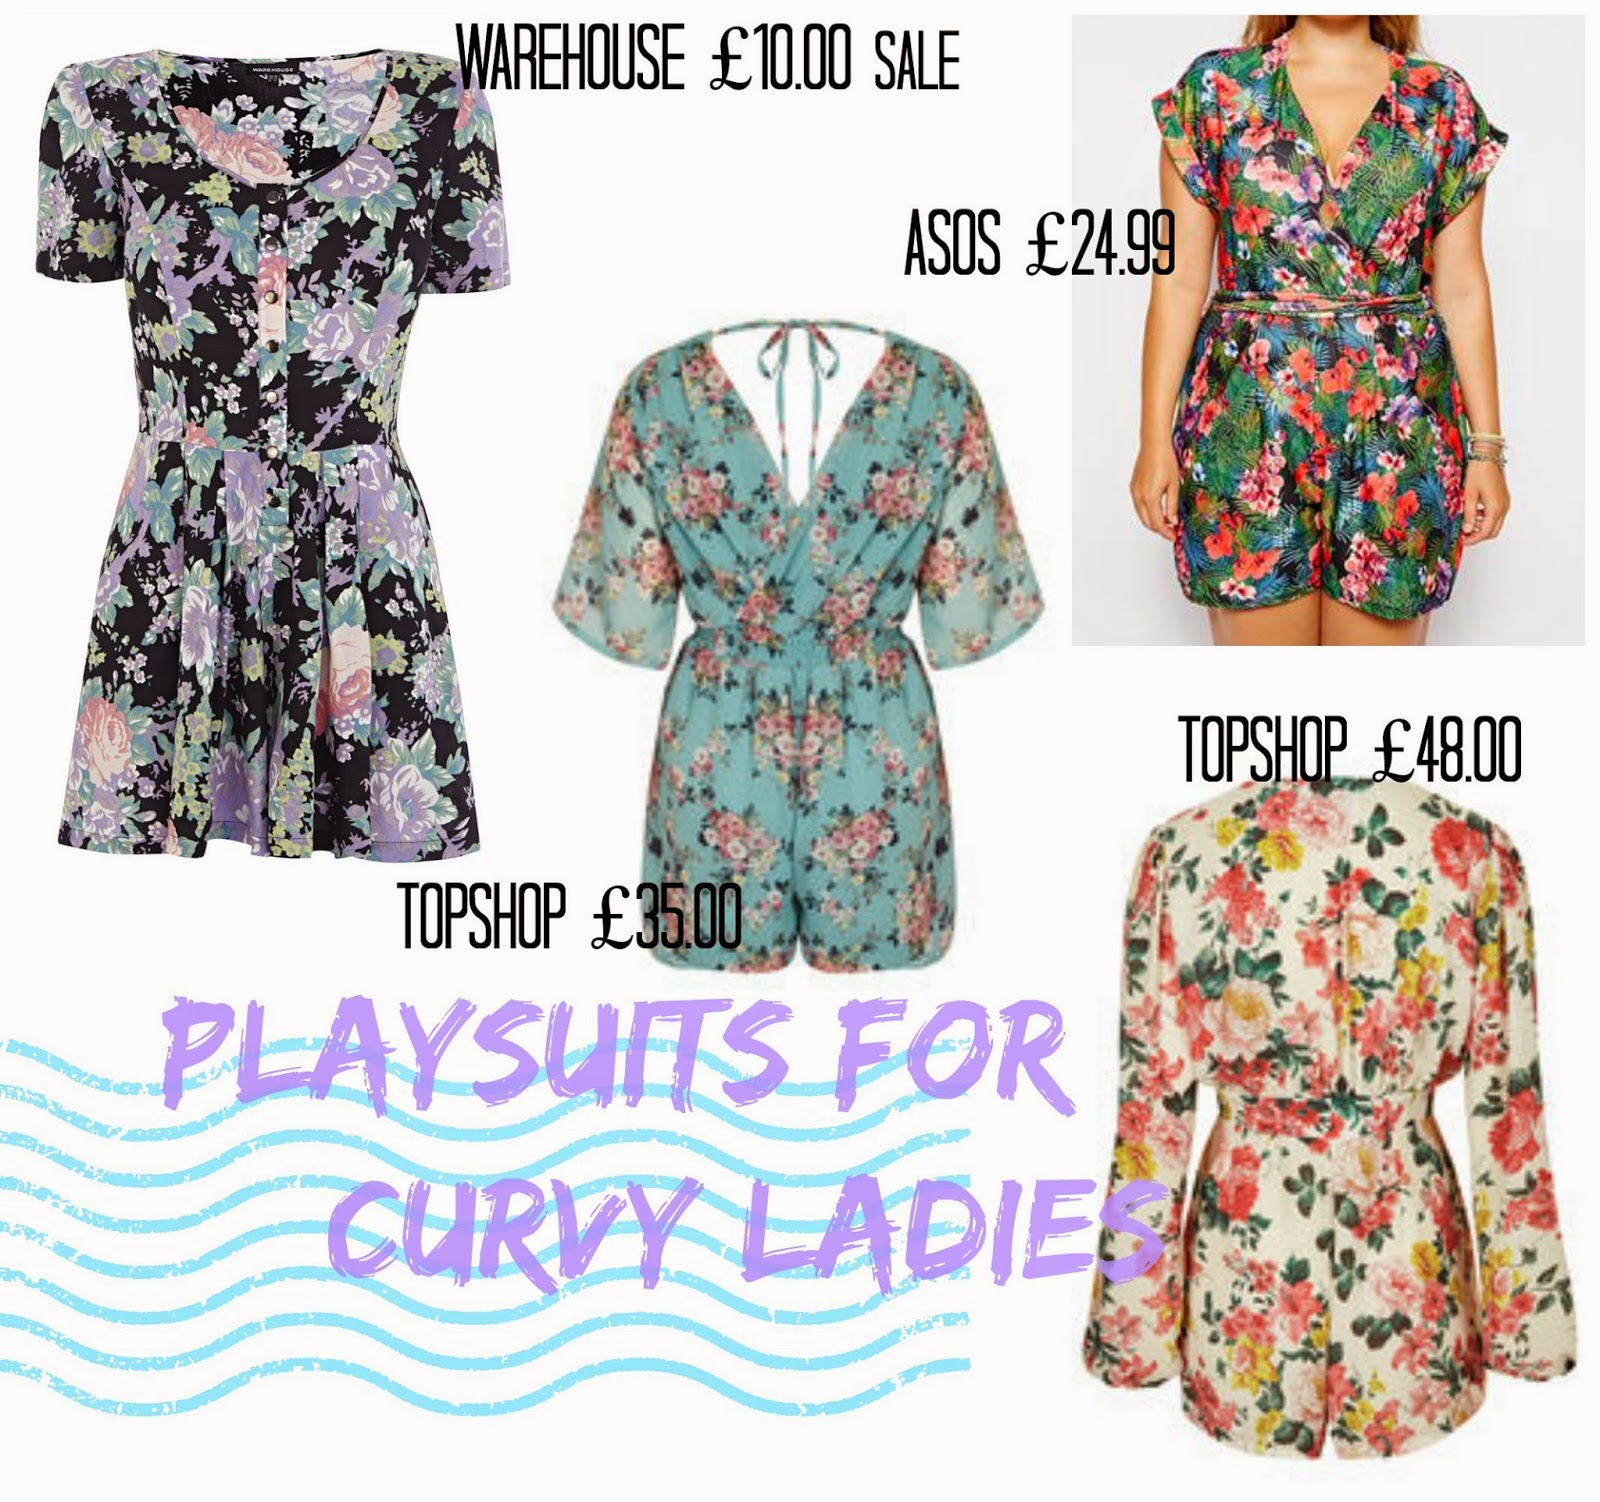 Playsuits for curvy ladies